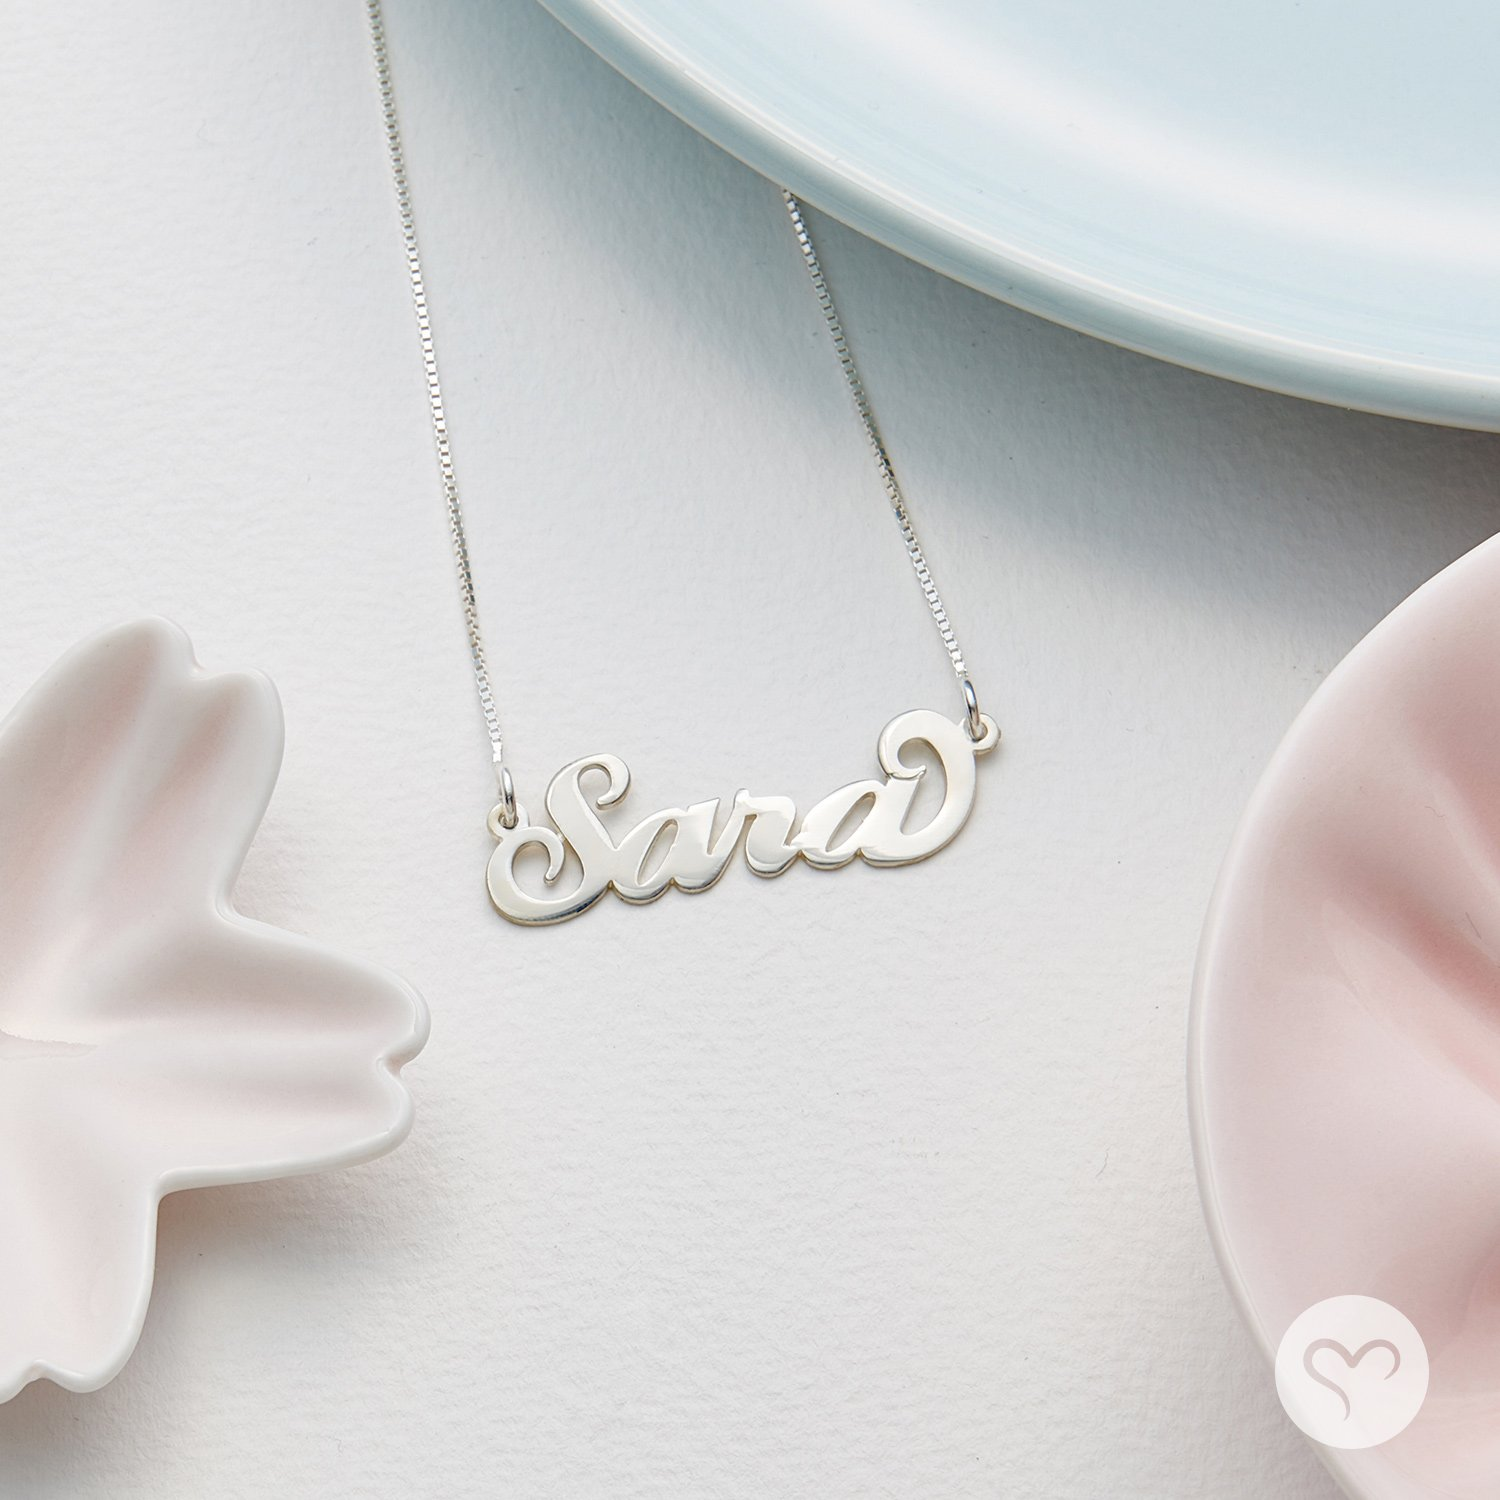 Personalized Name Necklace - Necklace with Name Pendant Custom Made - Gift For Her by My Name Necklace (Image #2)